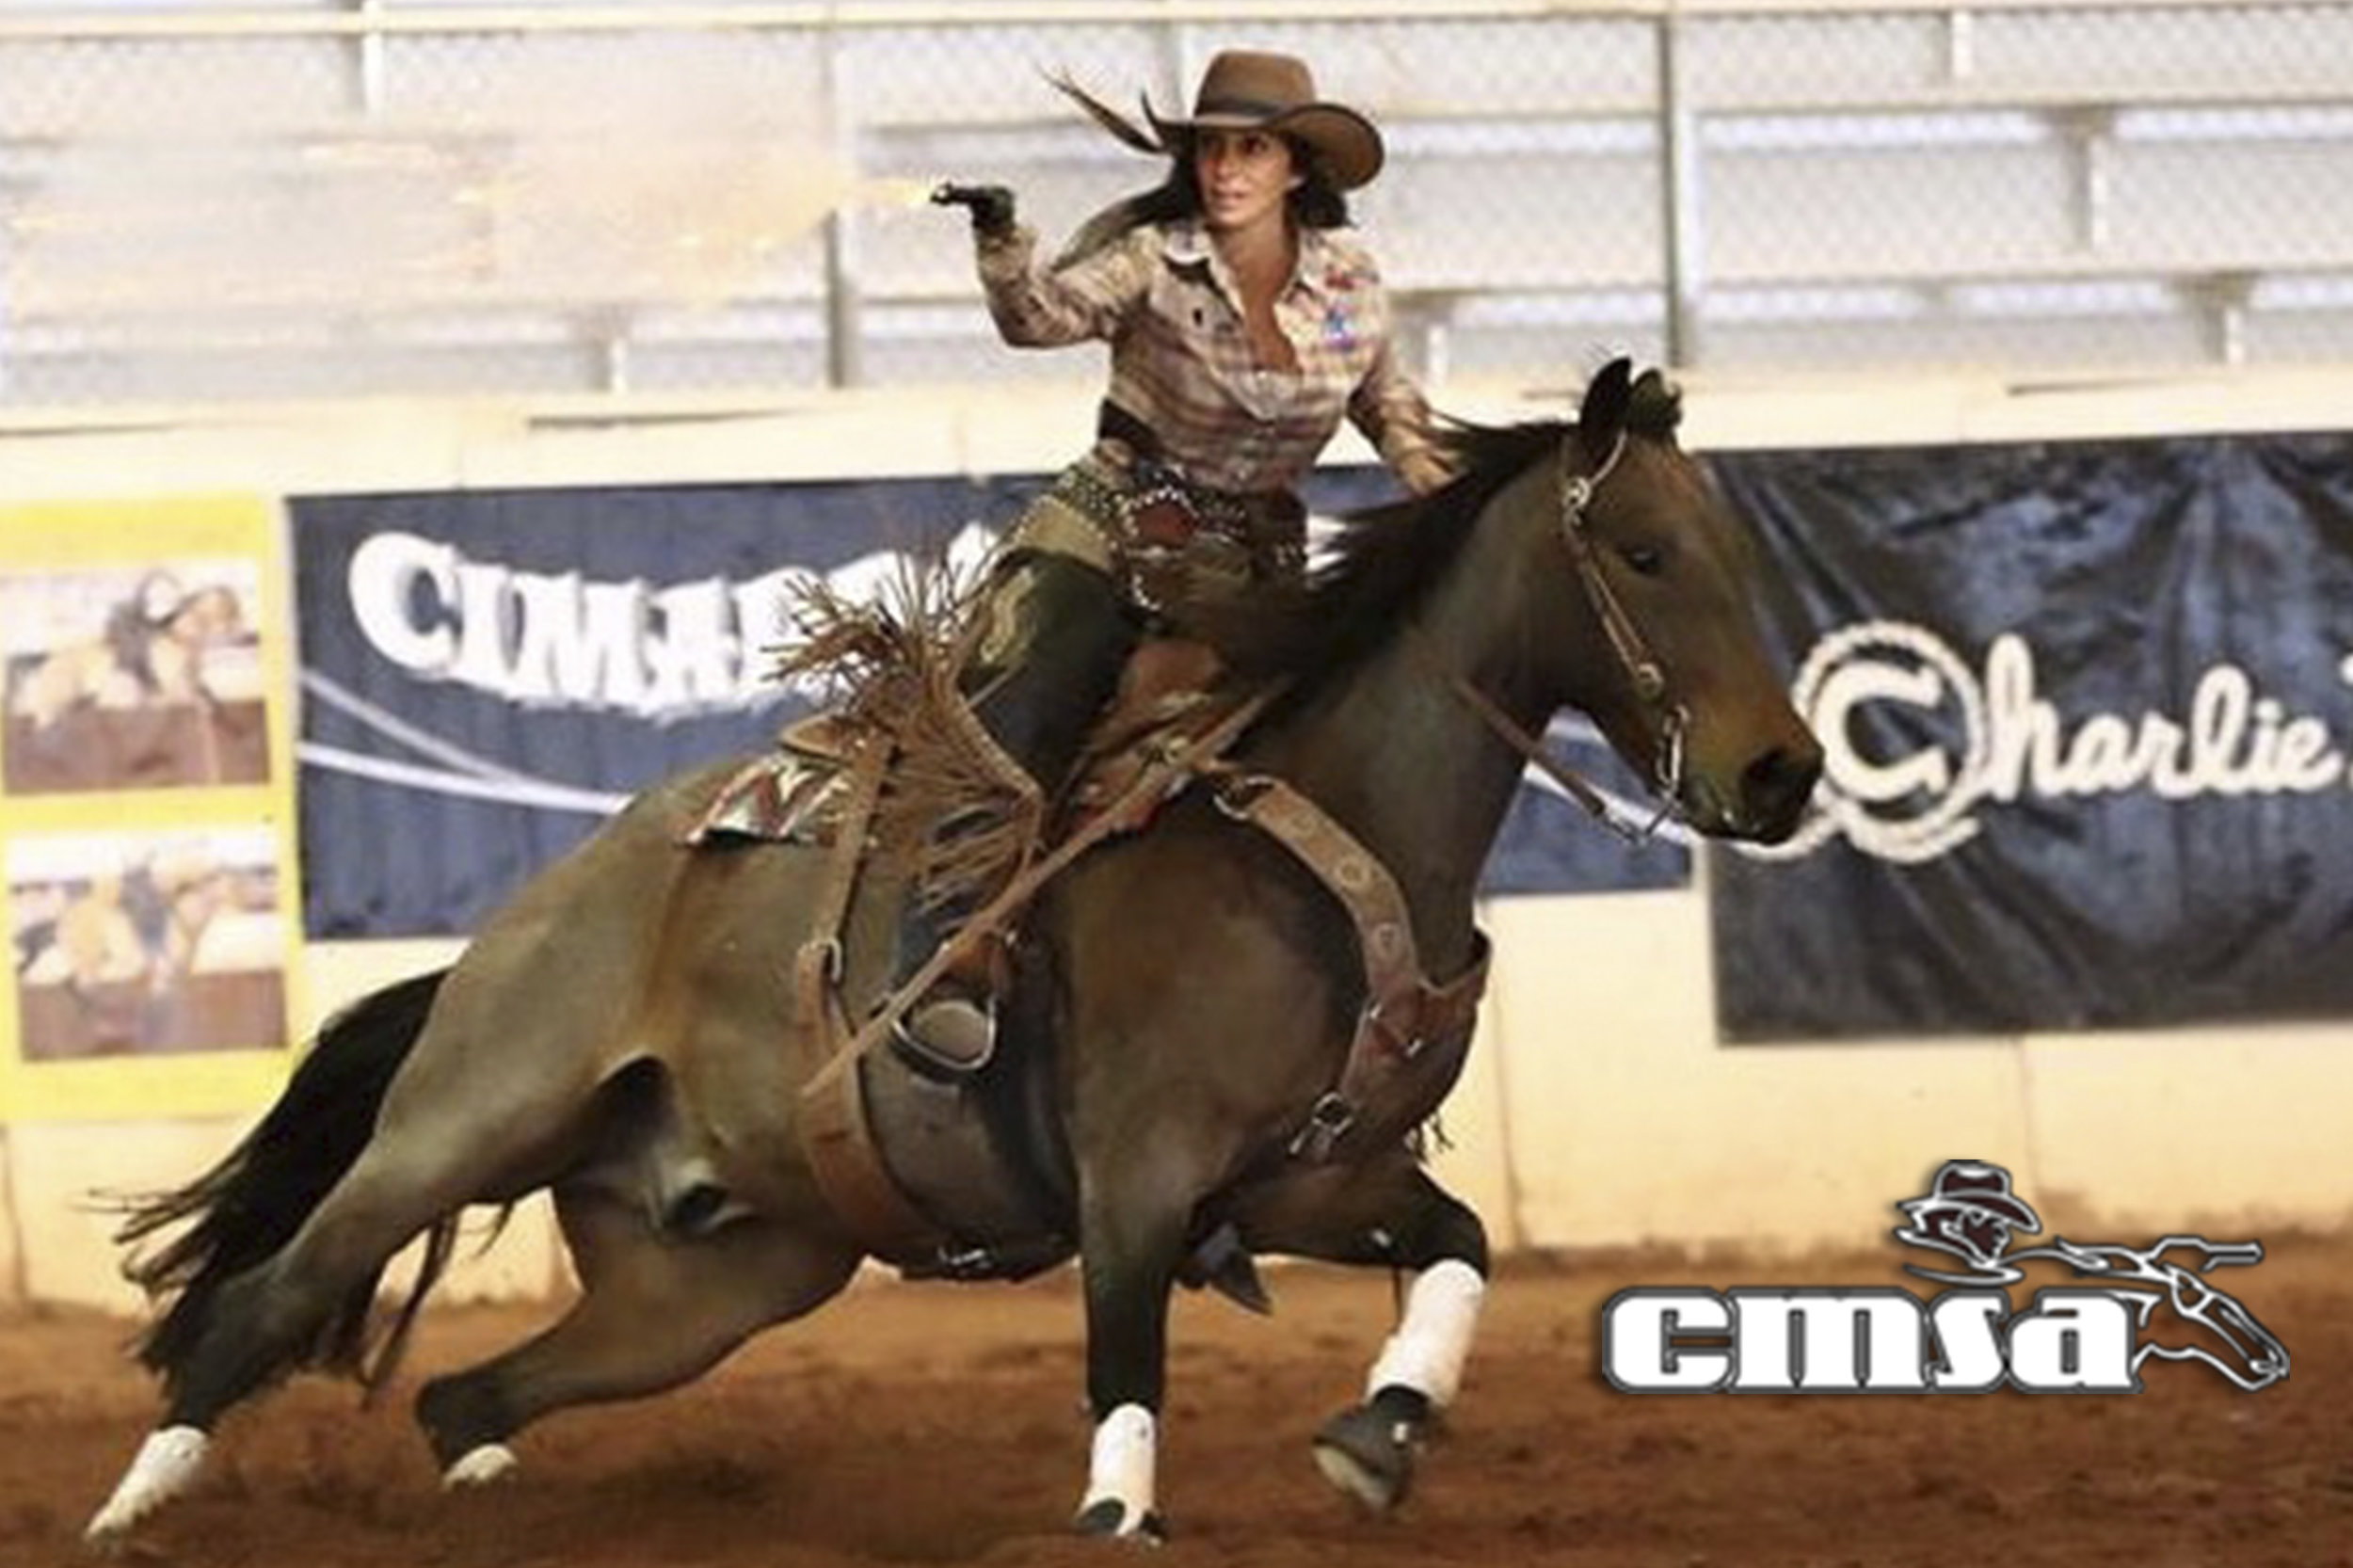 Annie Bianco-Ellett: World and National Champion, Winner of the 2015 Cowboy Capitol Double Down Finals, and Winner of the 2015 Outlaw Annie Shoot for the Troops Championship